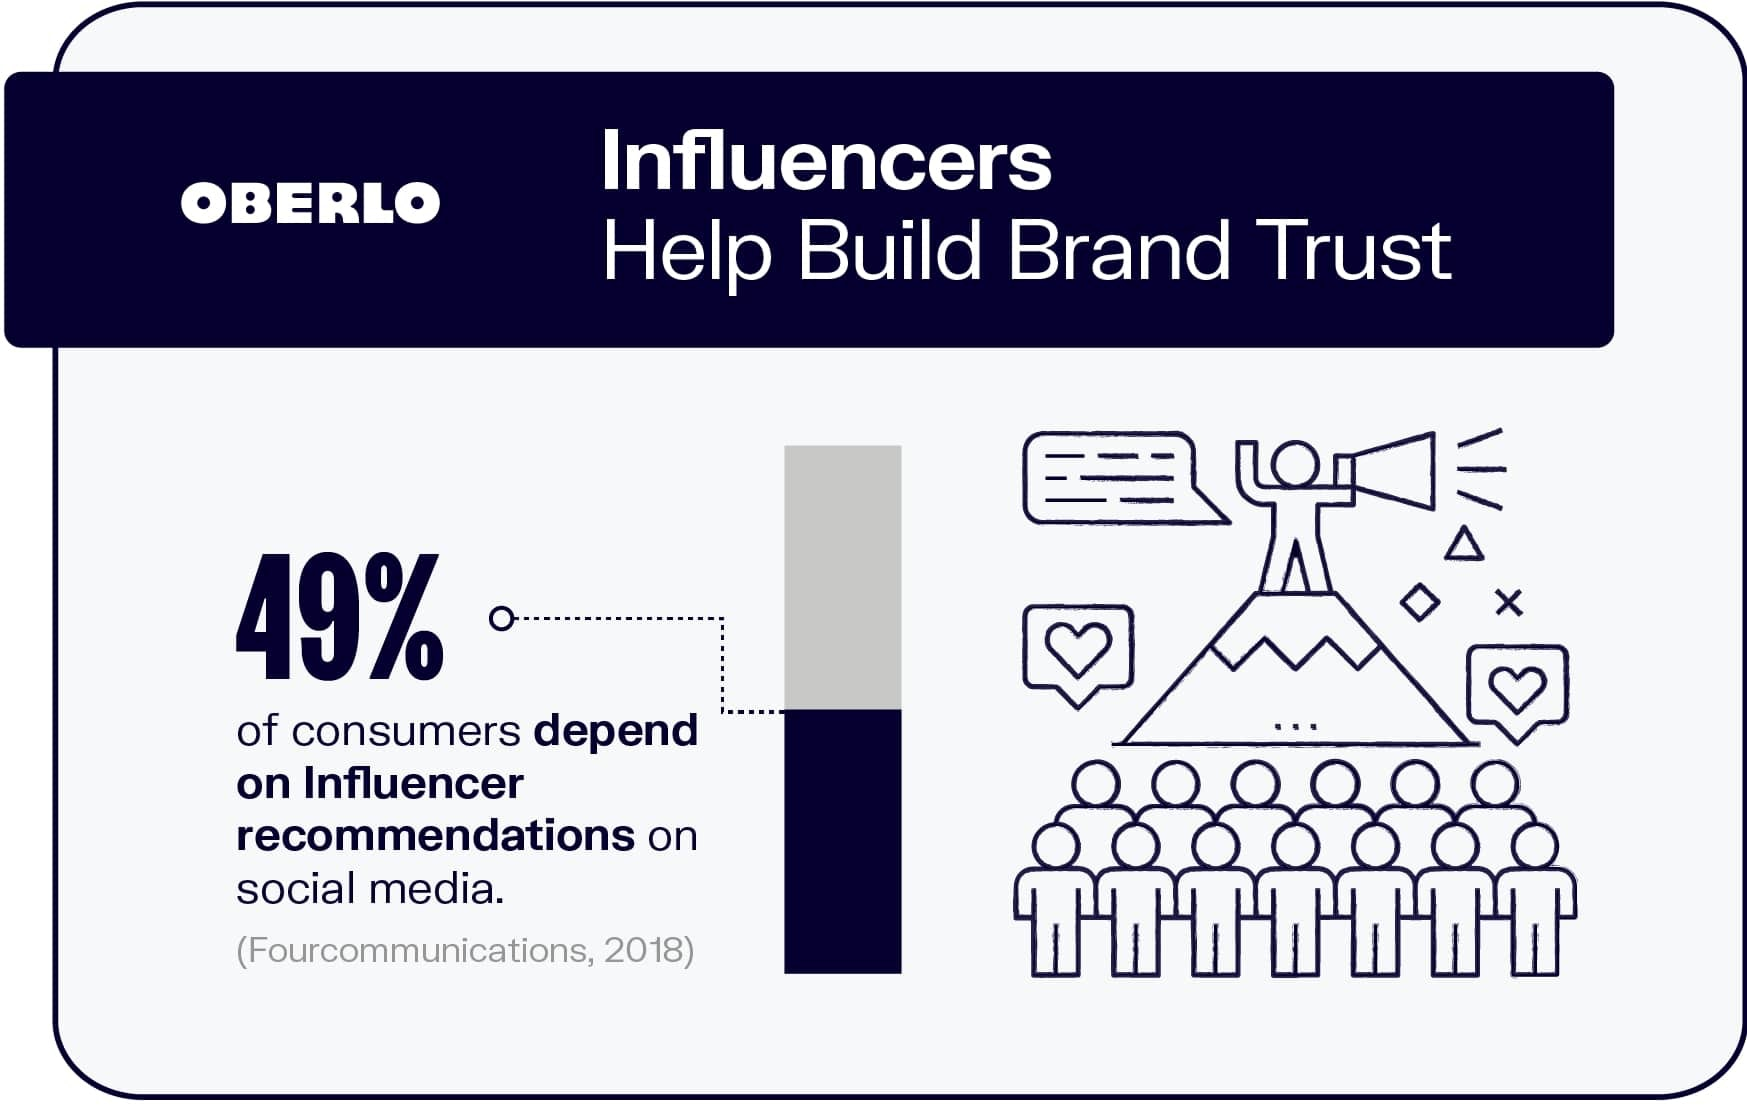 Influencers Help Build Brand Trust